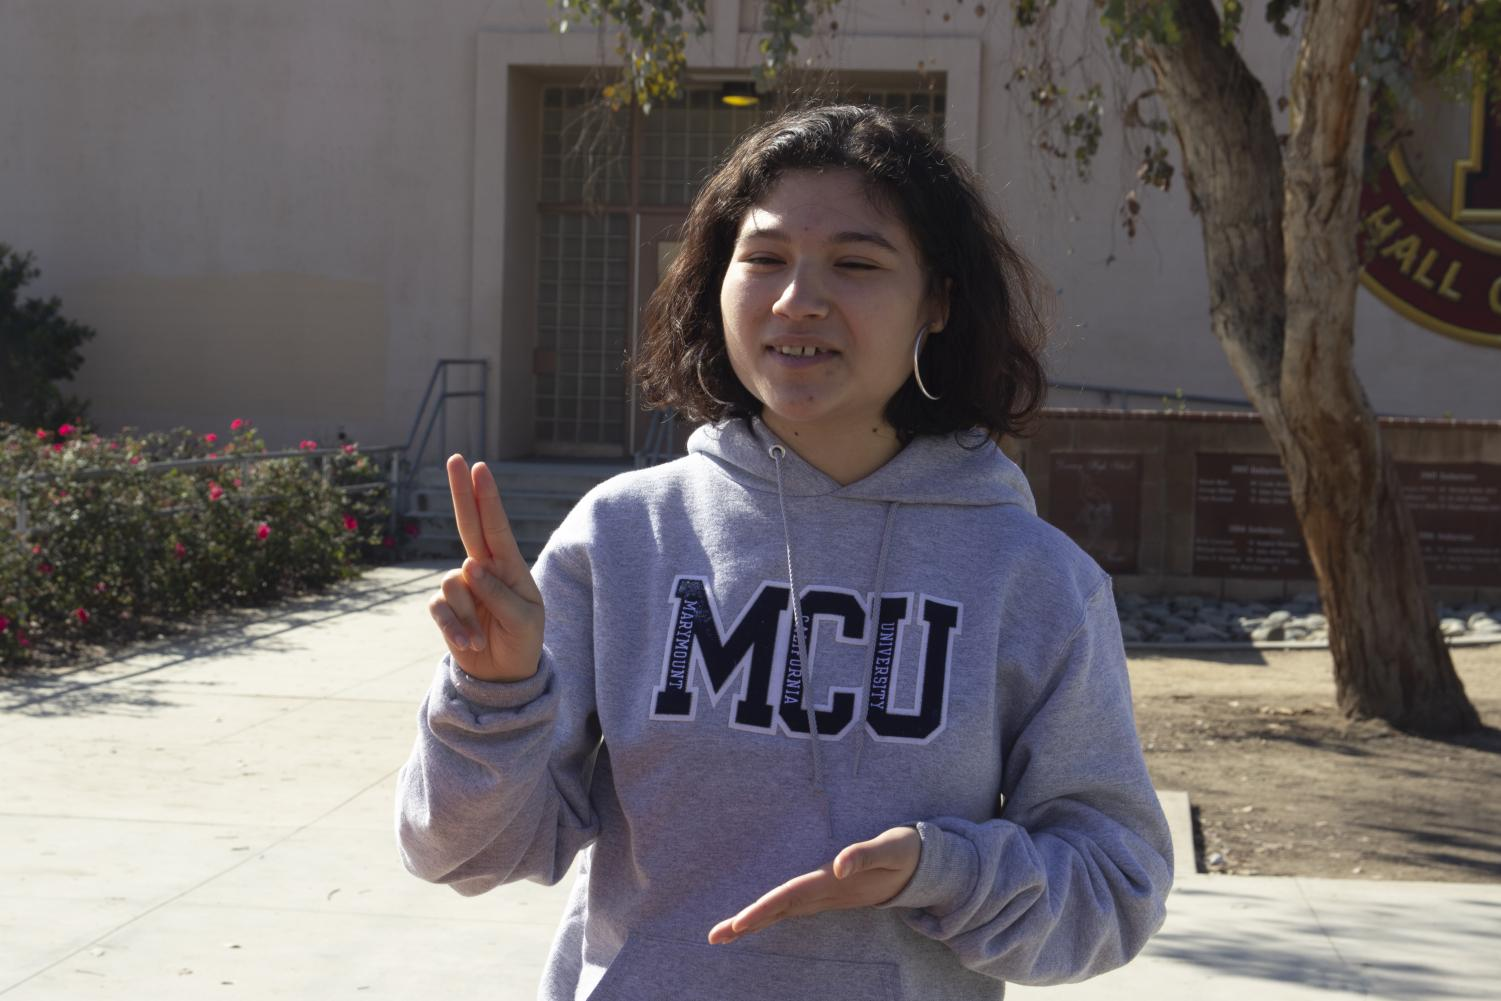 In+front+of+the+J+building+on+Feb.+8%2C+Priscilla+Palos%2C12%2C+communicates+using+sign+language+to+her+interpreter+and+mentions+her+acceptance+to+Gallaudet+University+in+Washington+D.C.+%E2%80%9CMy+ASL+teacher+told+me+about+it+and+at+first+I+didn%E2%80%99t+want+to+go%2C%E2%80%9D+Palos+said.+%E2%80%9CI+didn%E2%80%99t+think+Gallaudet+would+be+for+me+but+I+learned+more+about+it+and+signed+up.%E2%80%9D+